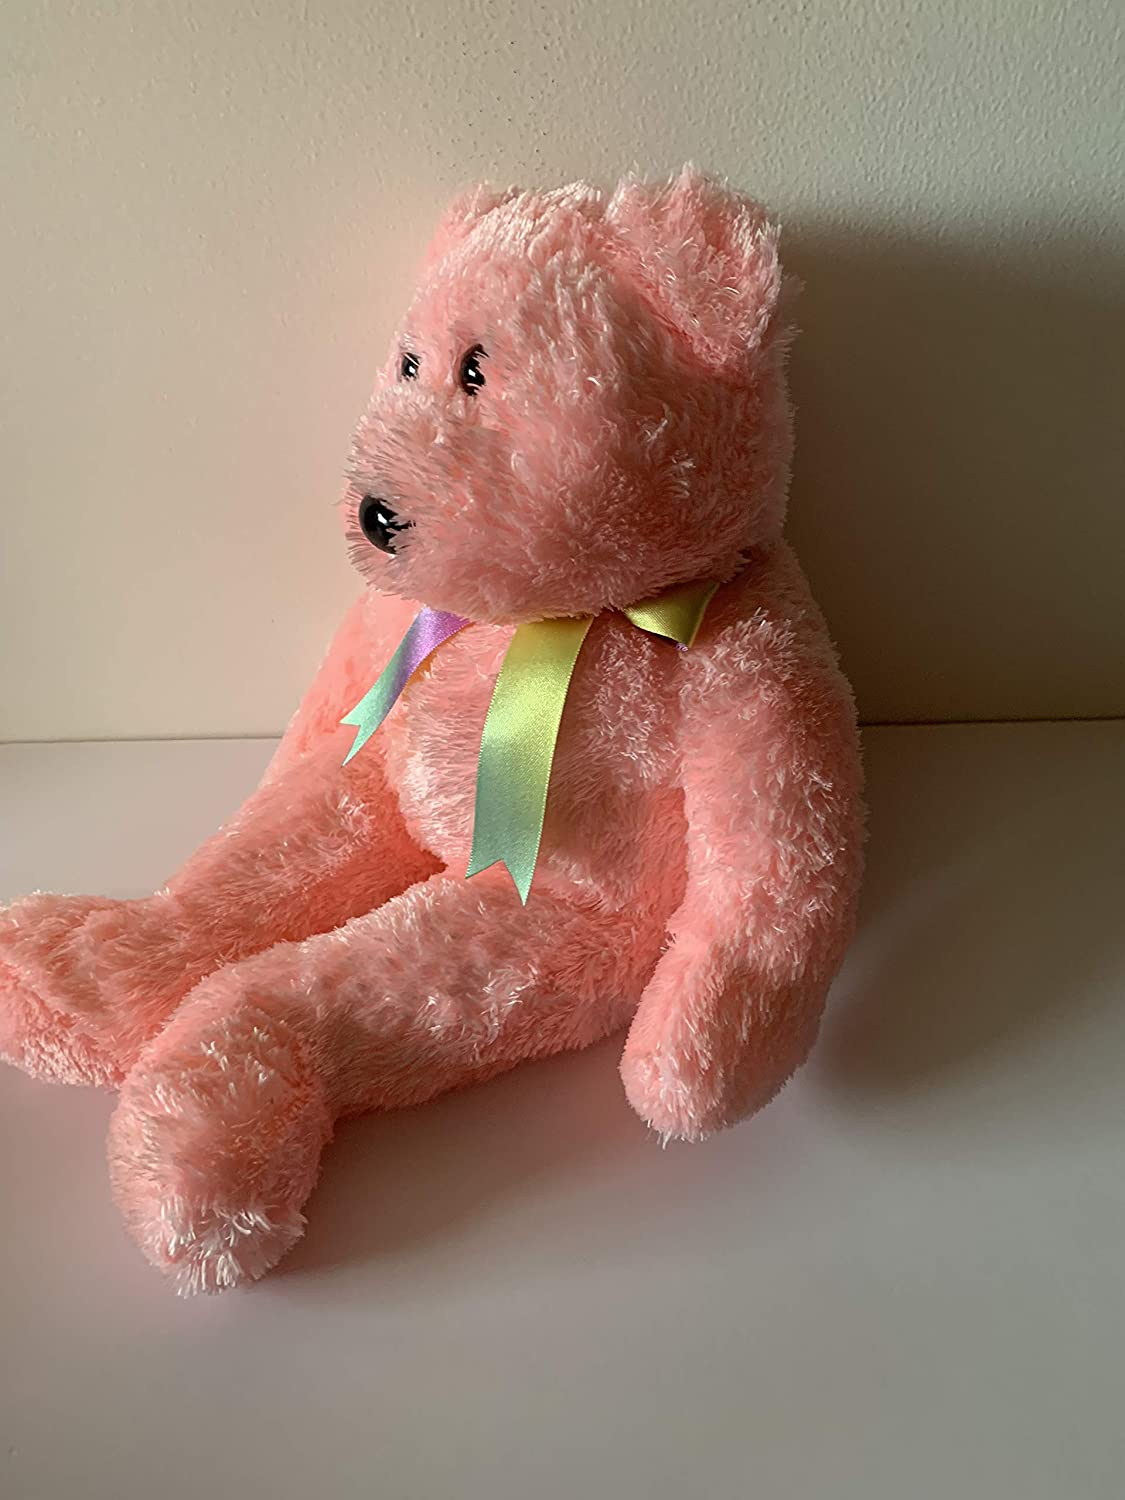 sensory toy 2 lbs weighted buddy bear Weighted stuffed animal